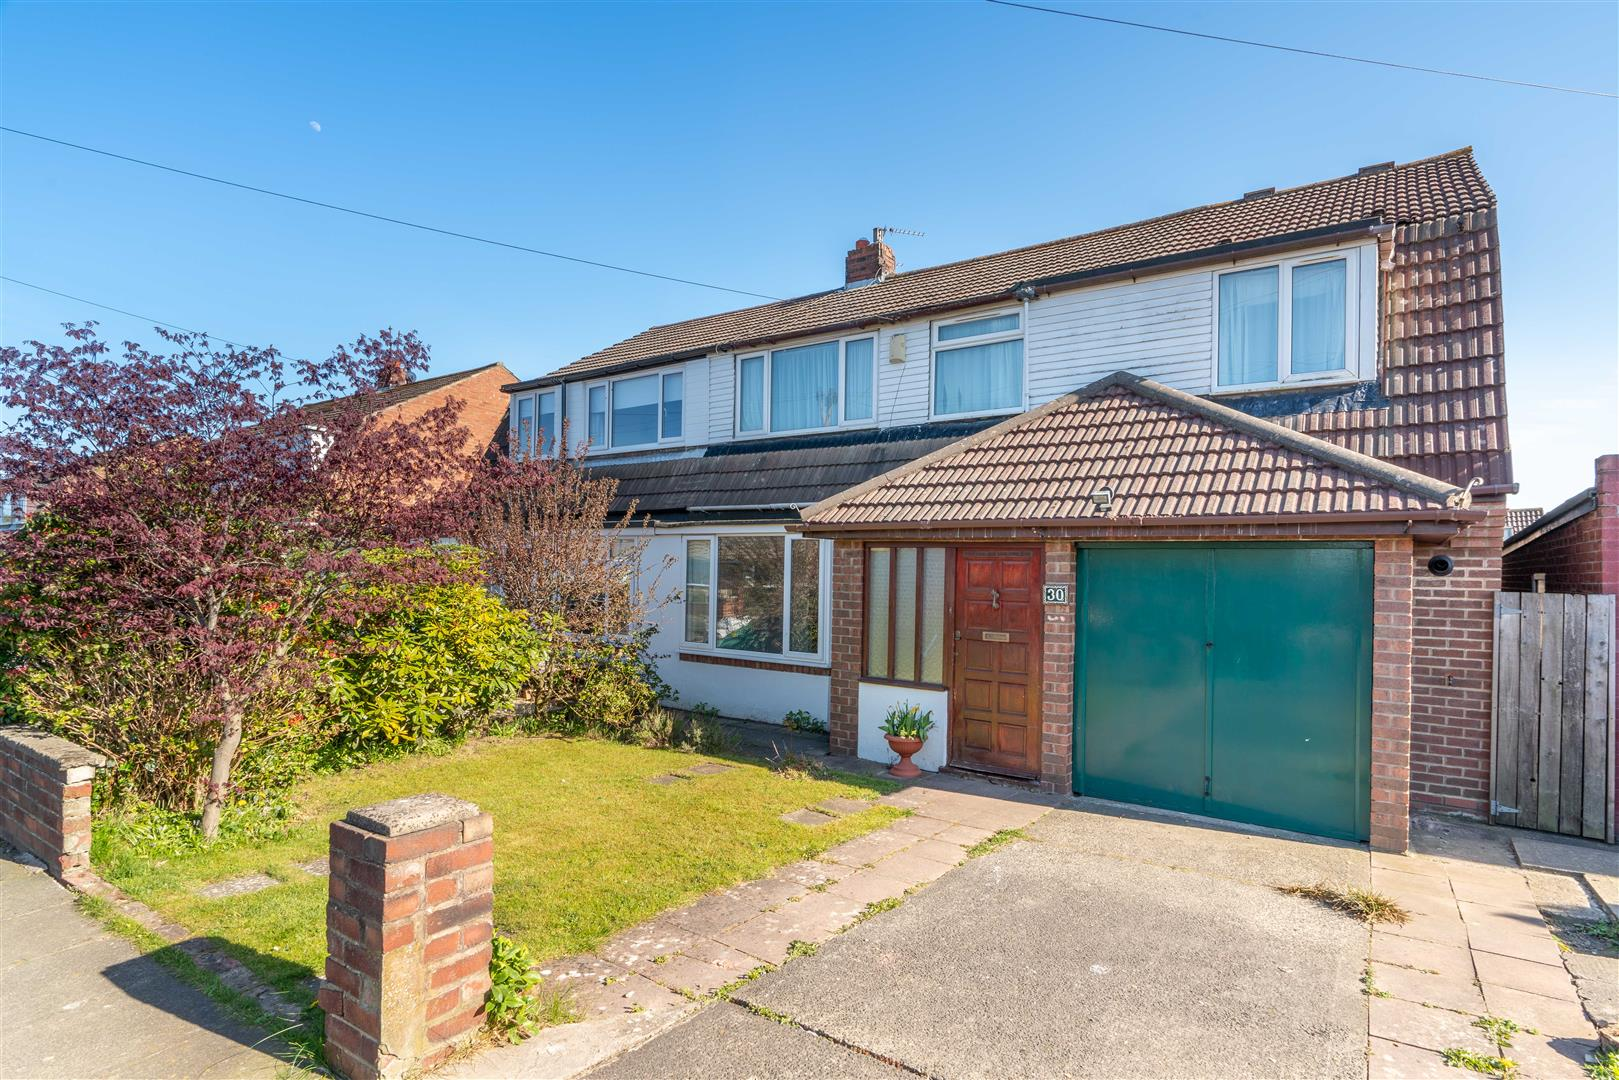 4 bed semi-detached house for sale in Caldwell Road, Red House Farm, NE3